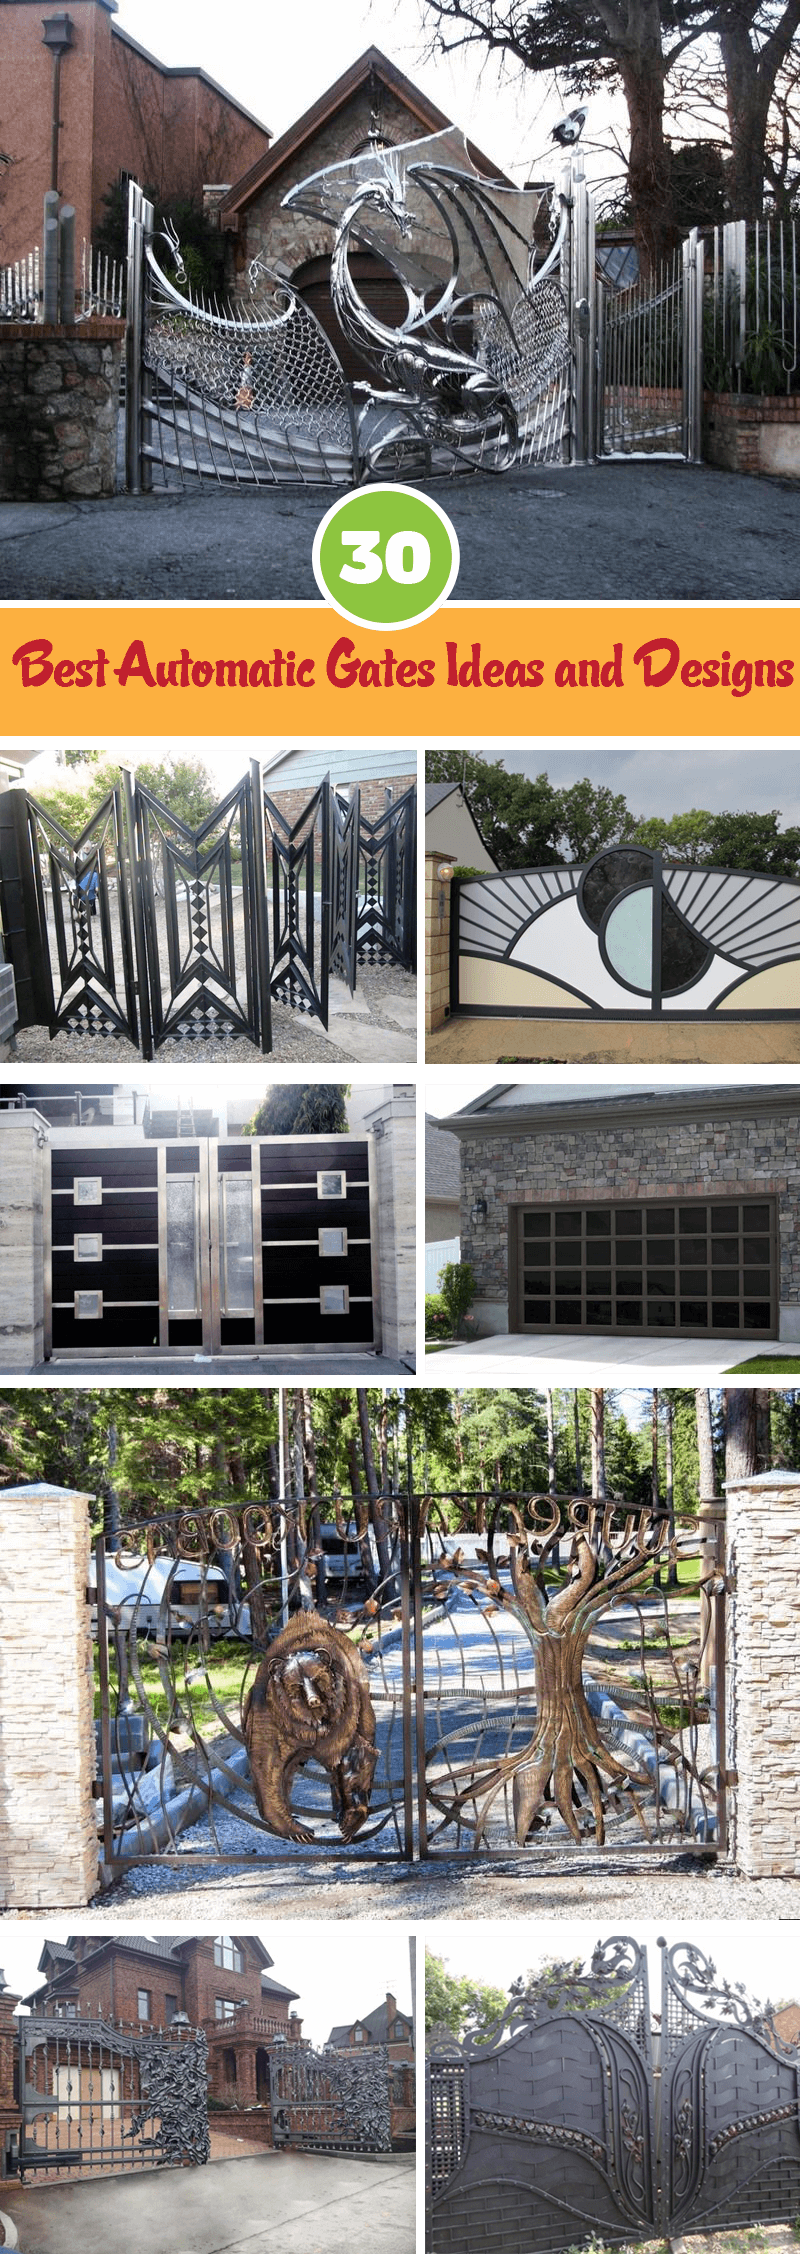 Best Automatic Gates Ideas and Designs